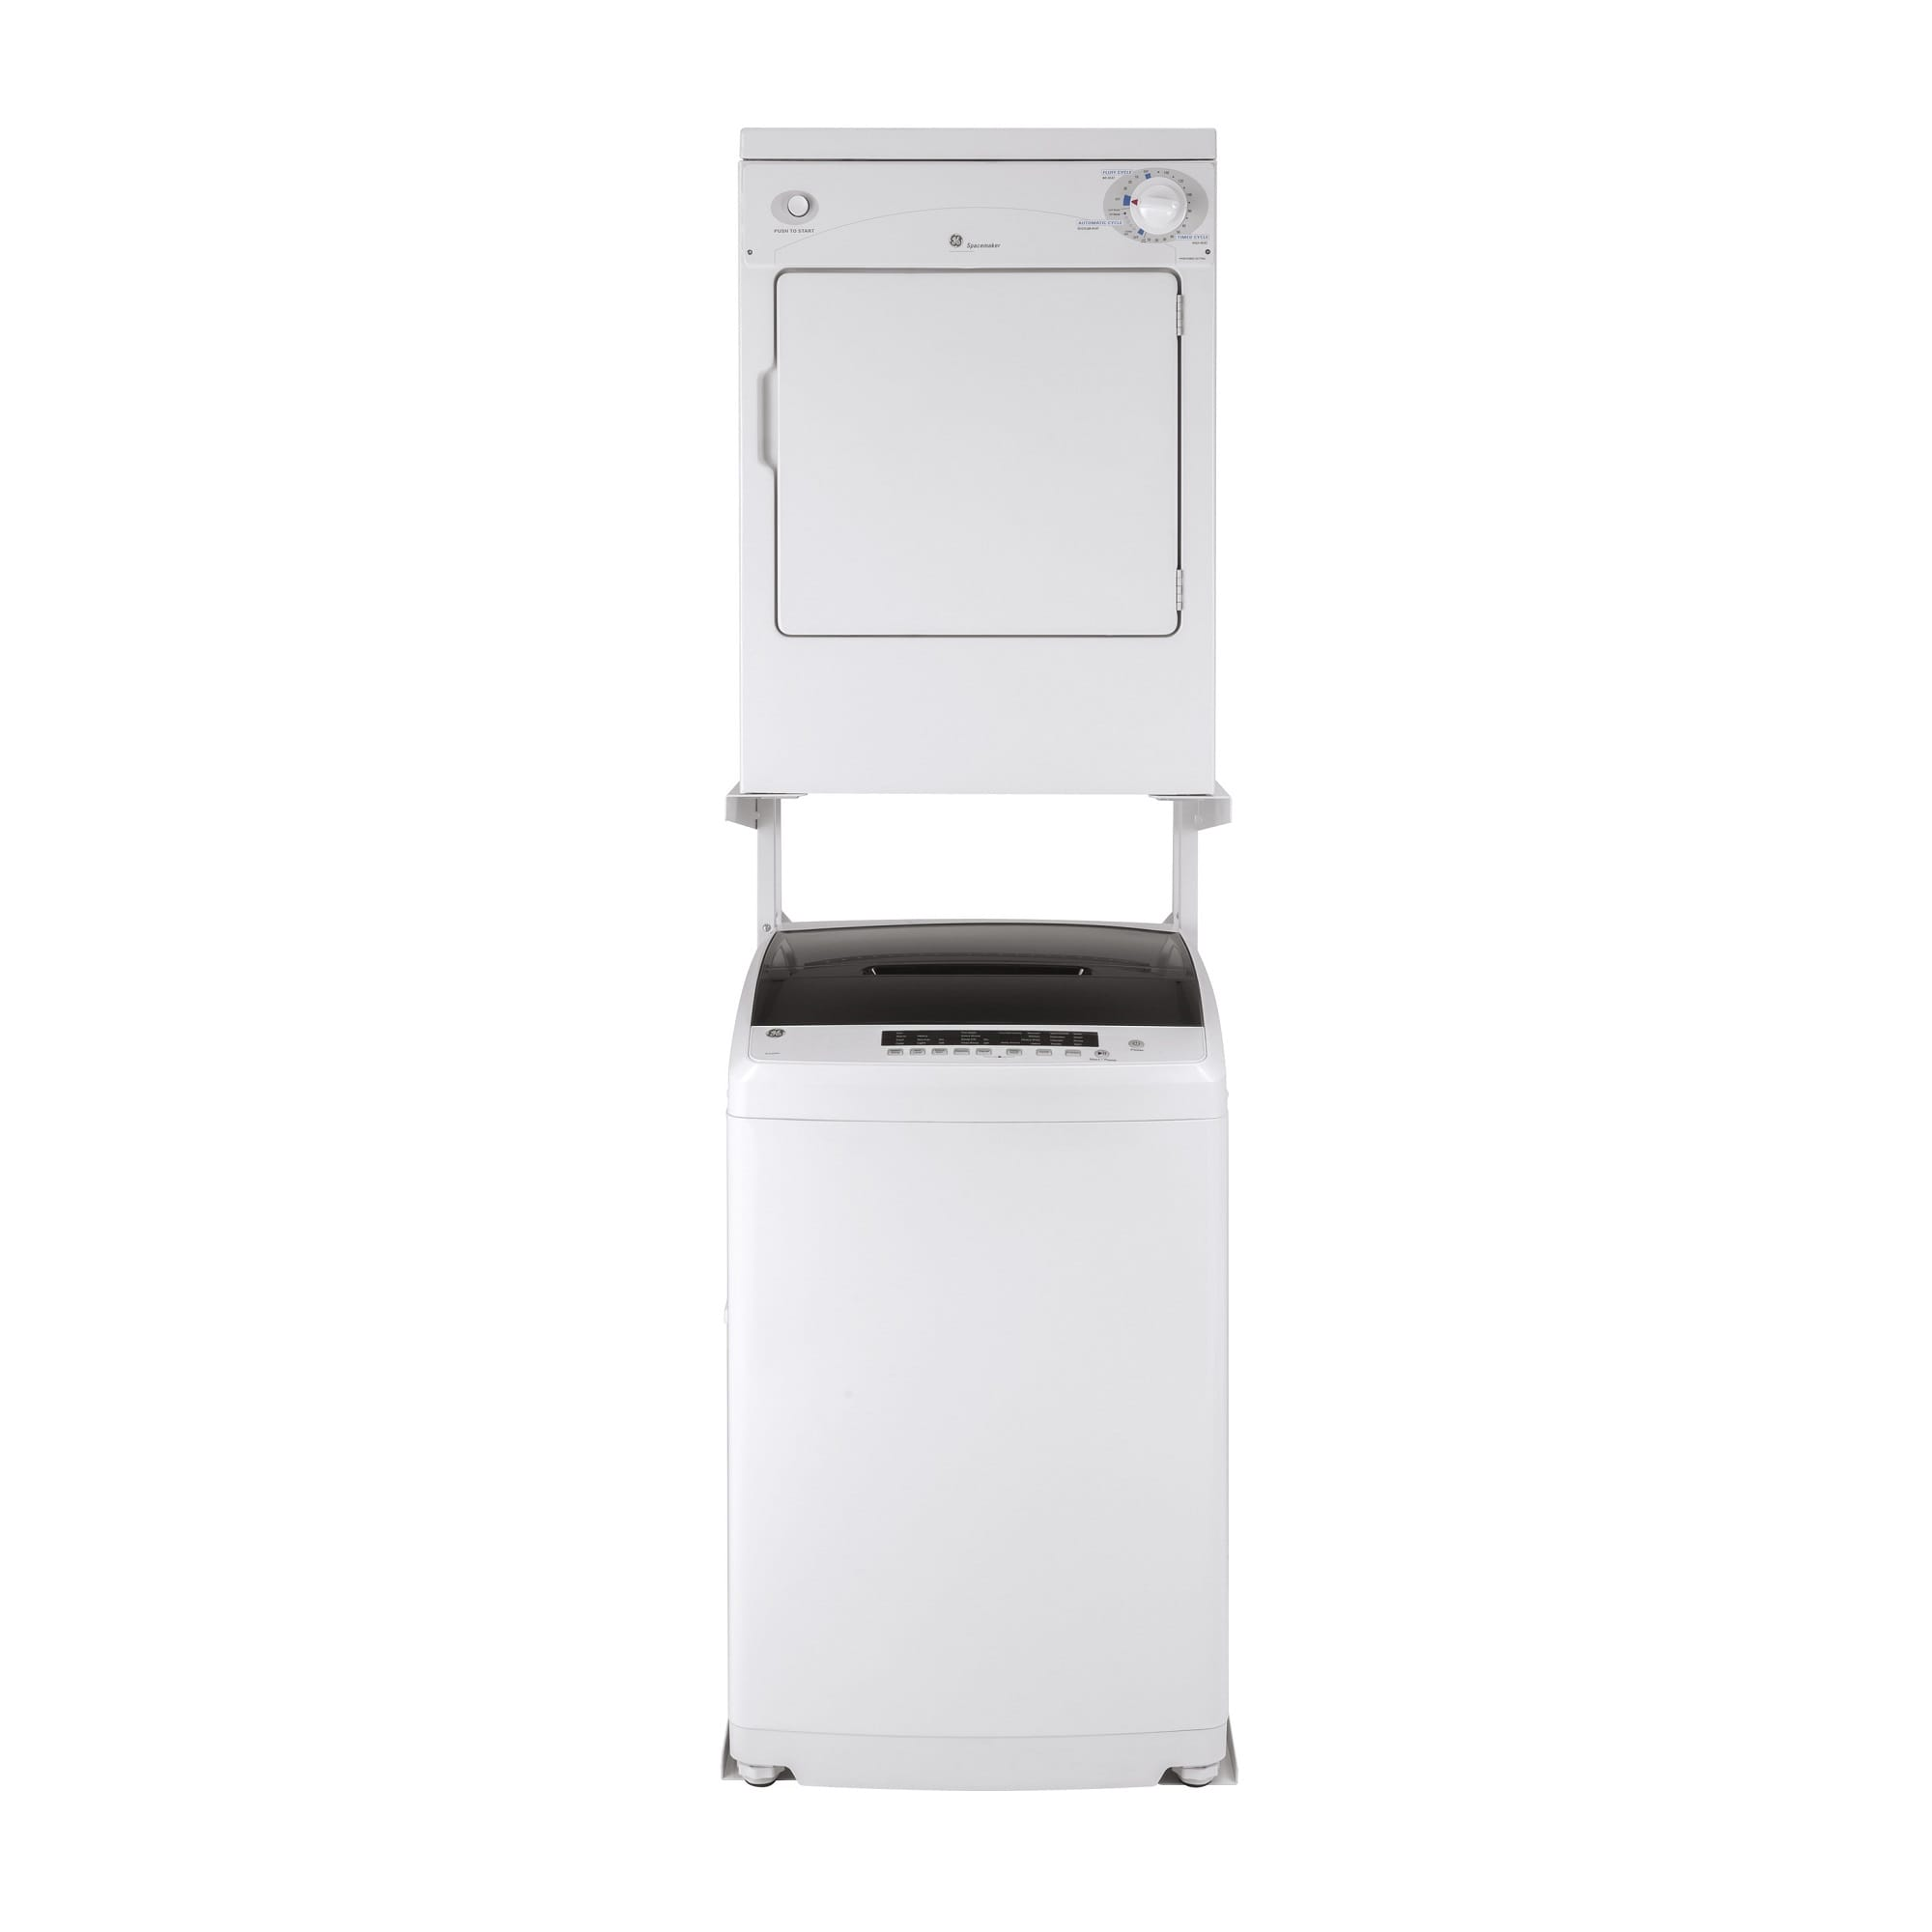 Space Saving 2 8 cu  ft  Portable Washer & 3 6 cu  ft  120V Portable  Electric Dryer